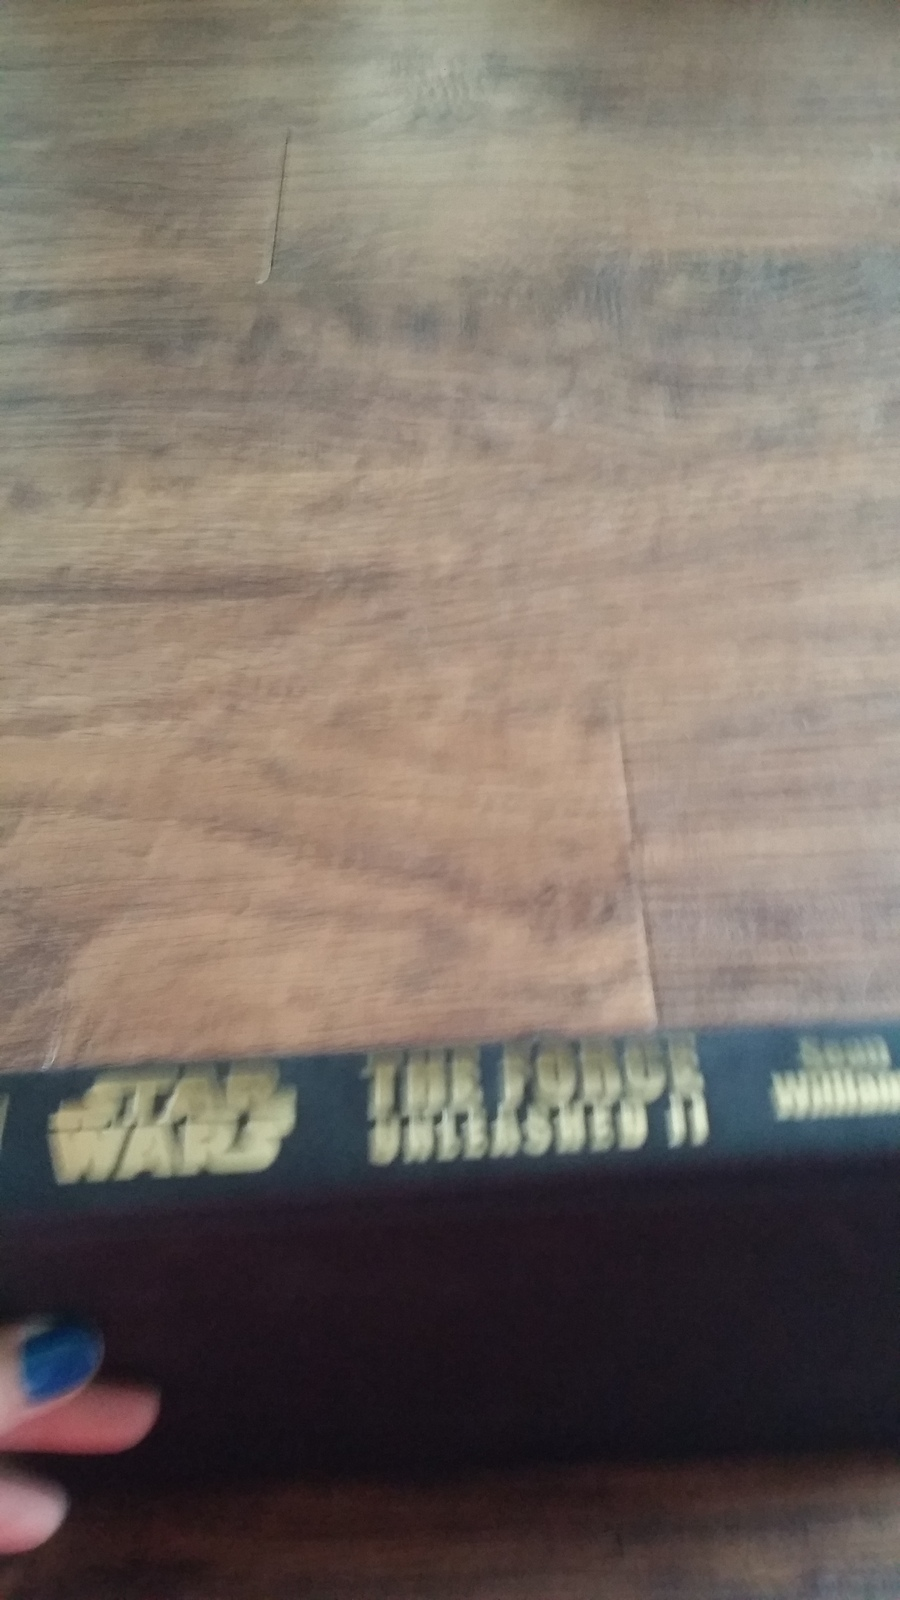 Star Wars The Force Unleashed II by Sean Williams (2010 Hardcover)